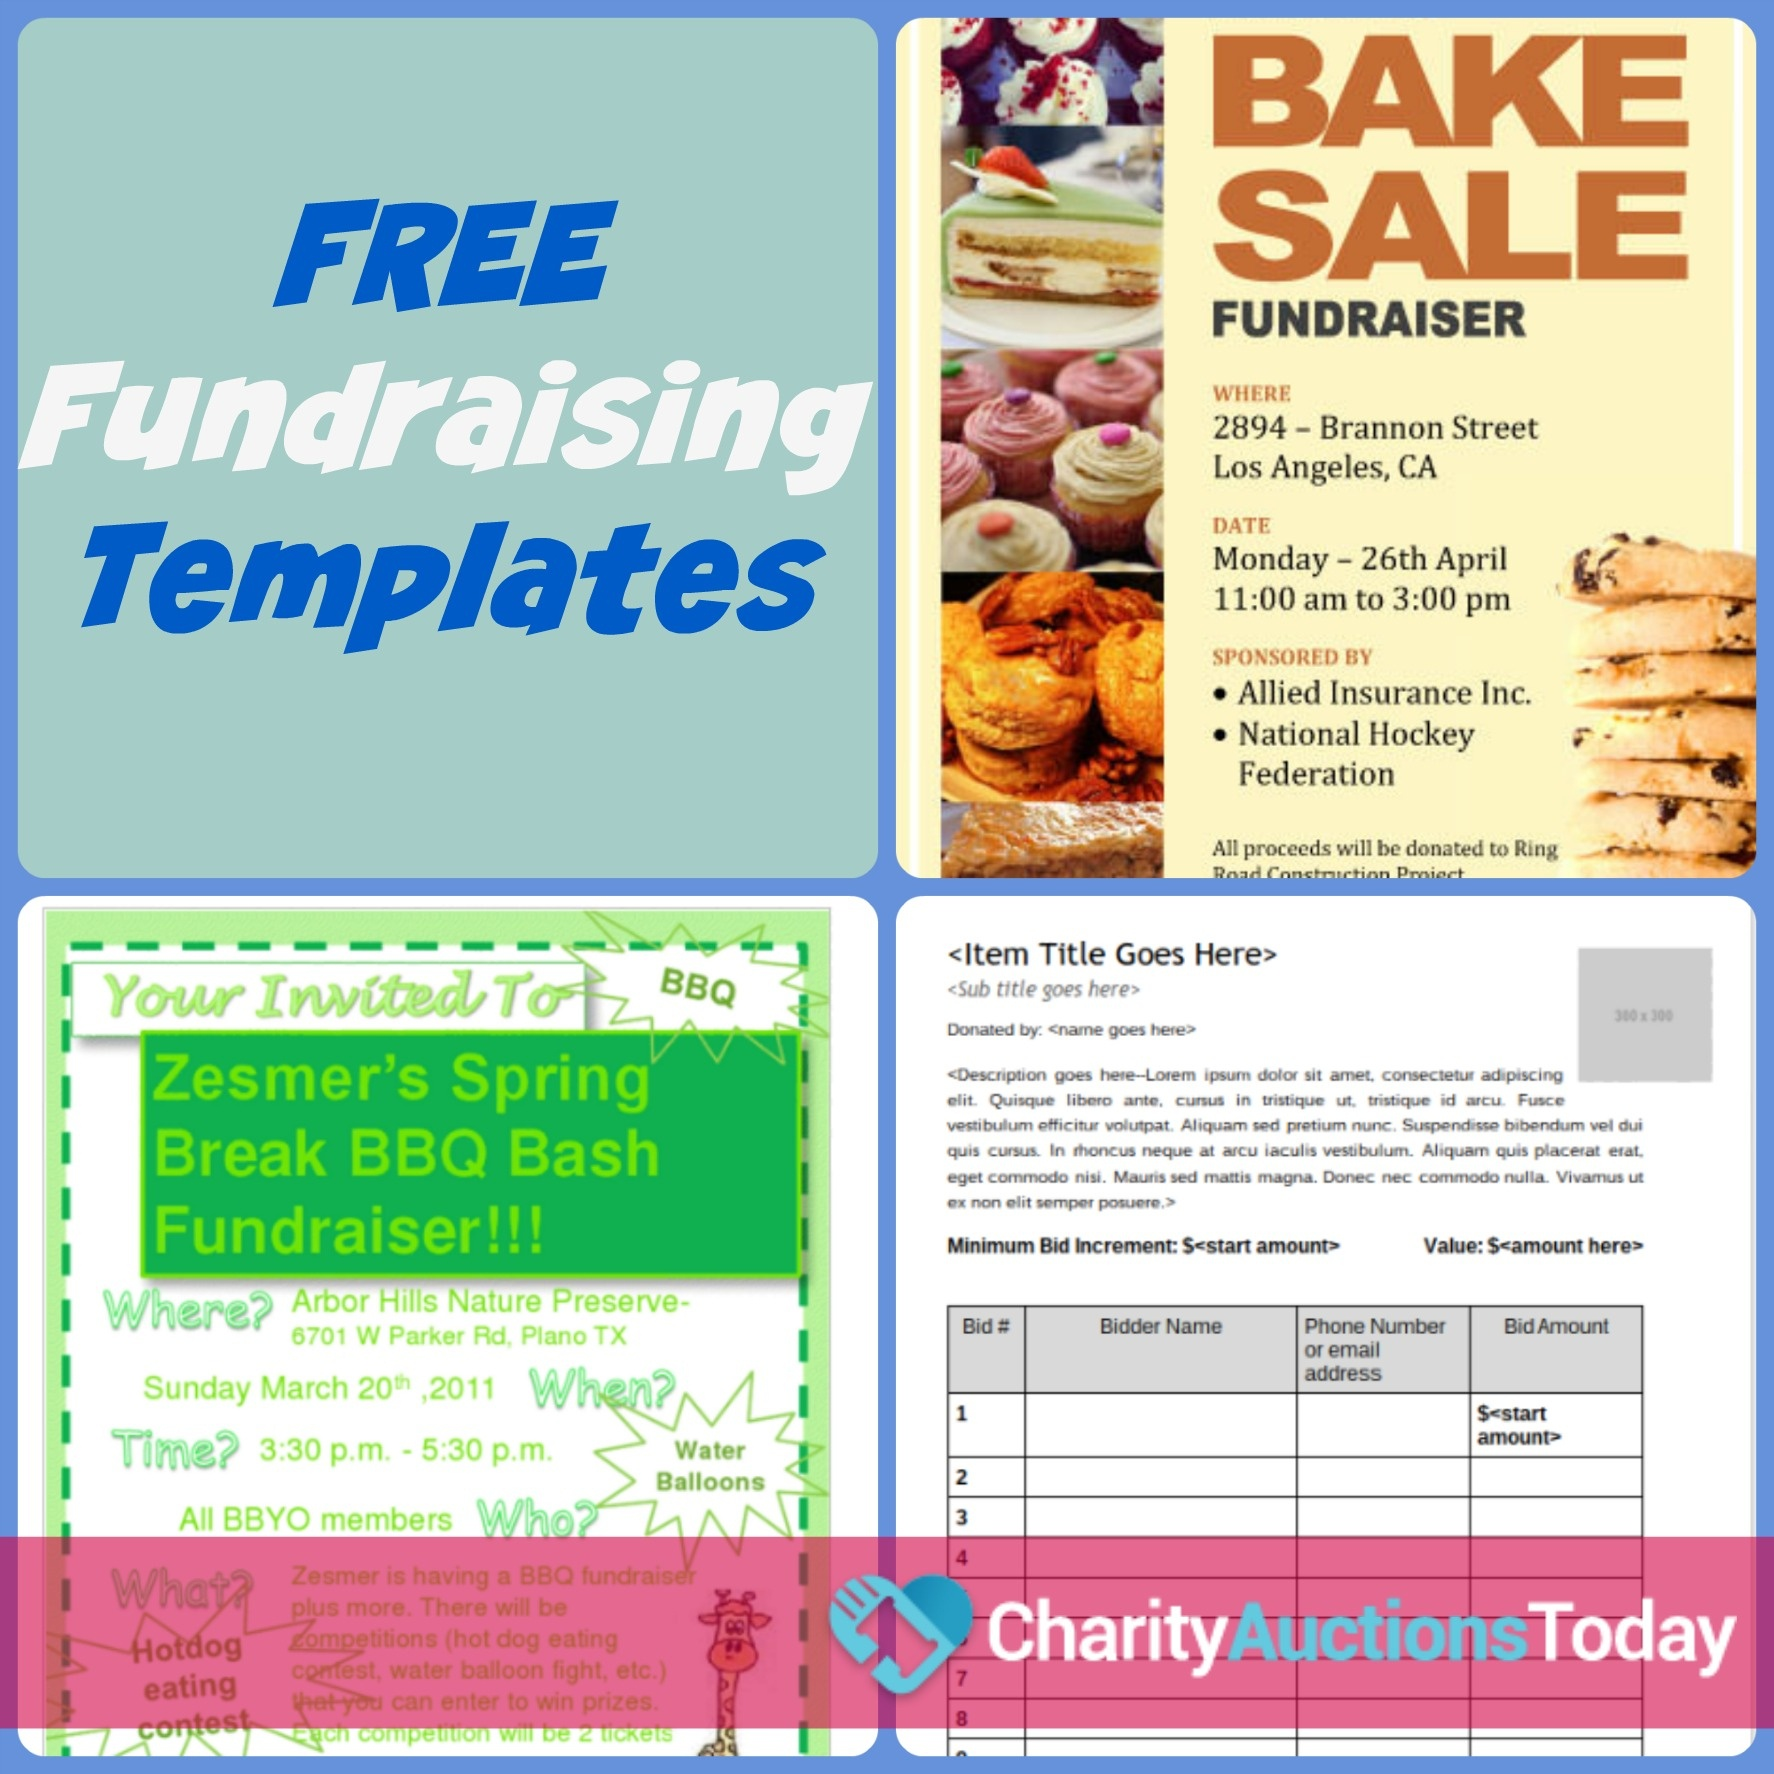 Free Fundraiser Flyer | Charity Auctions Today - Free Printable Fundraiser Flyer Templates